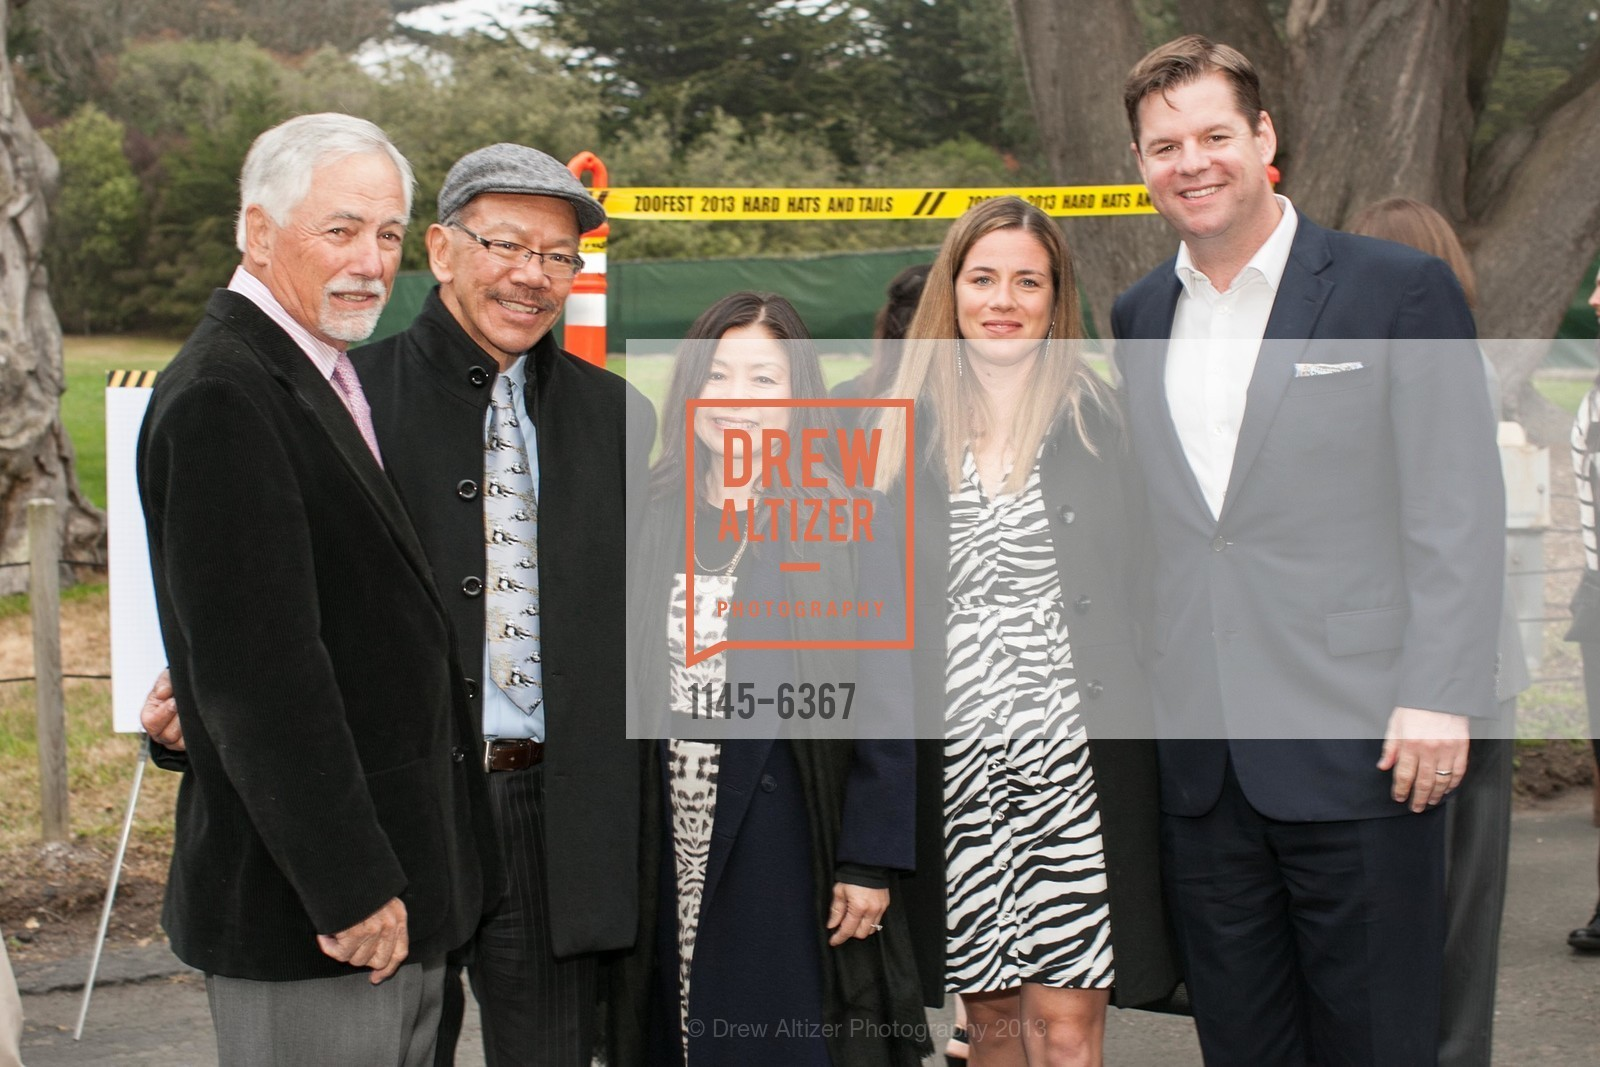 Mark Buell, Supervisor Norman Yee, Kathy Chung, Liz Farrell, Supervisor Mark Farrell, ZooFest 2013 Hard Hat & Tails, US, May 11th, 2013,Drew Altizer, Drew Altizer Photography, full-service agency, private events, San Francisco photographer, photographer california